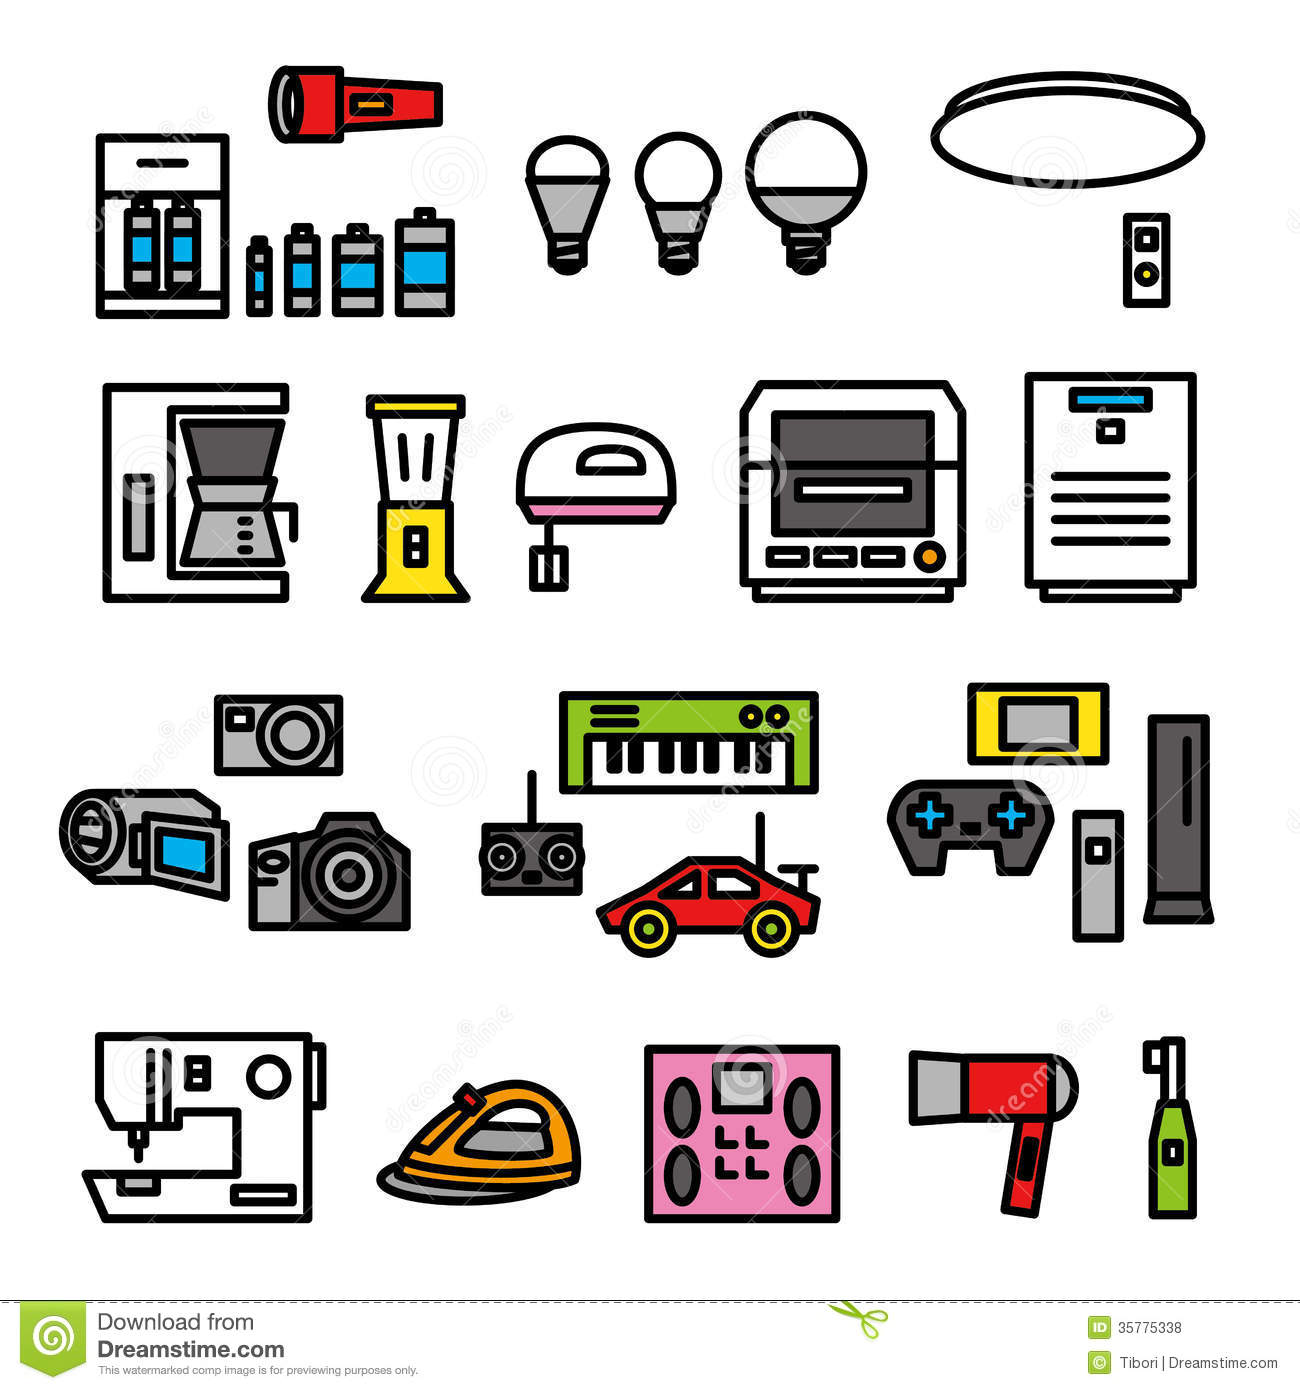 Electric Appliances 02 Royalty Free Stock Photos Image